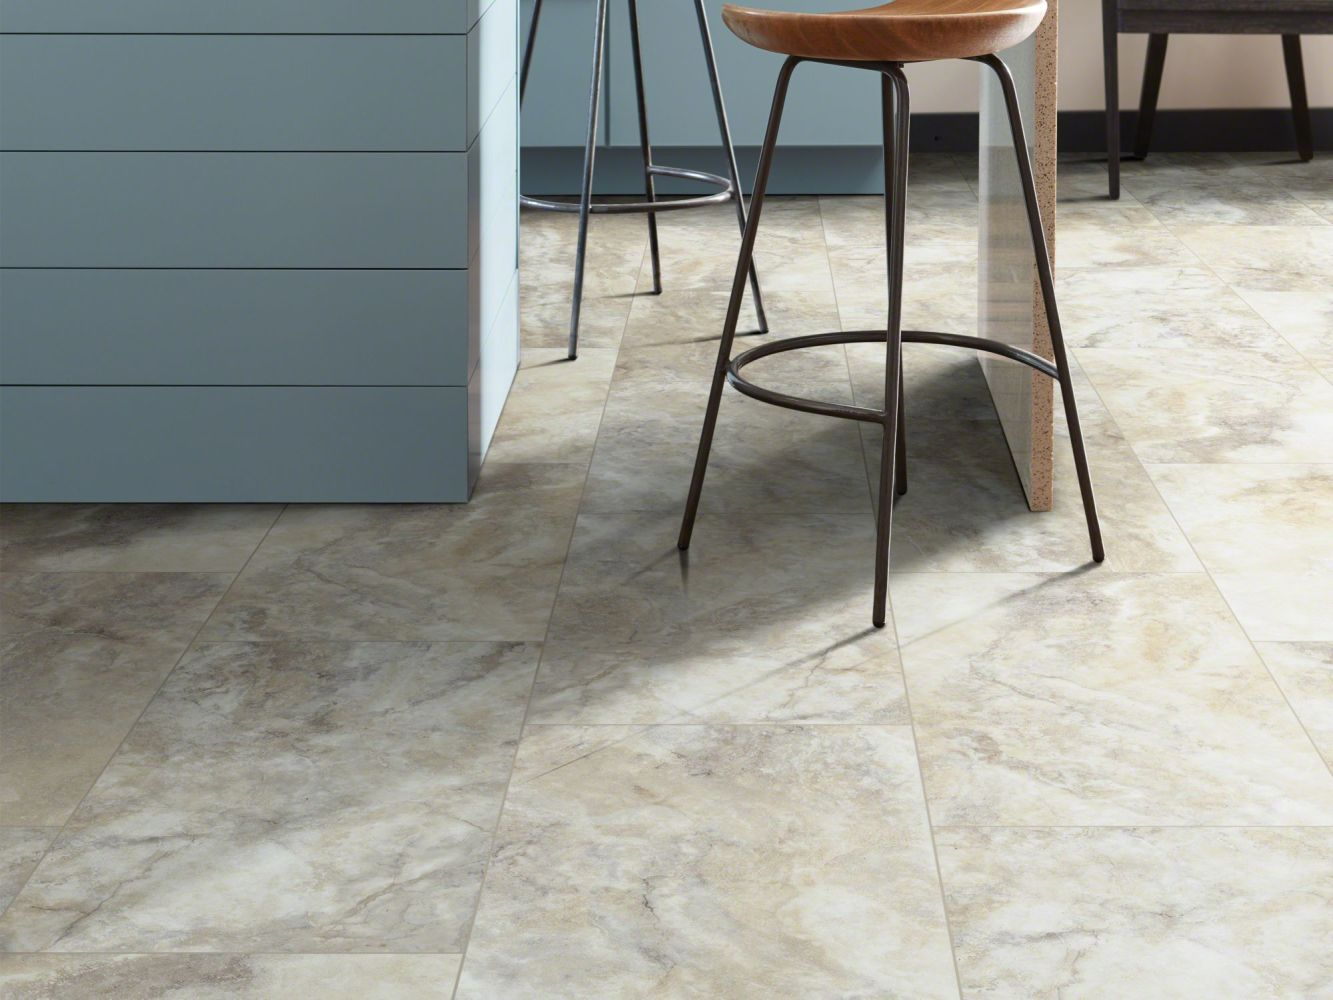 Shaw Floors Resilient Residential Paragon Tile Plus Pebble 01009_1022V